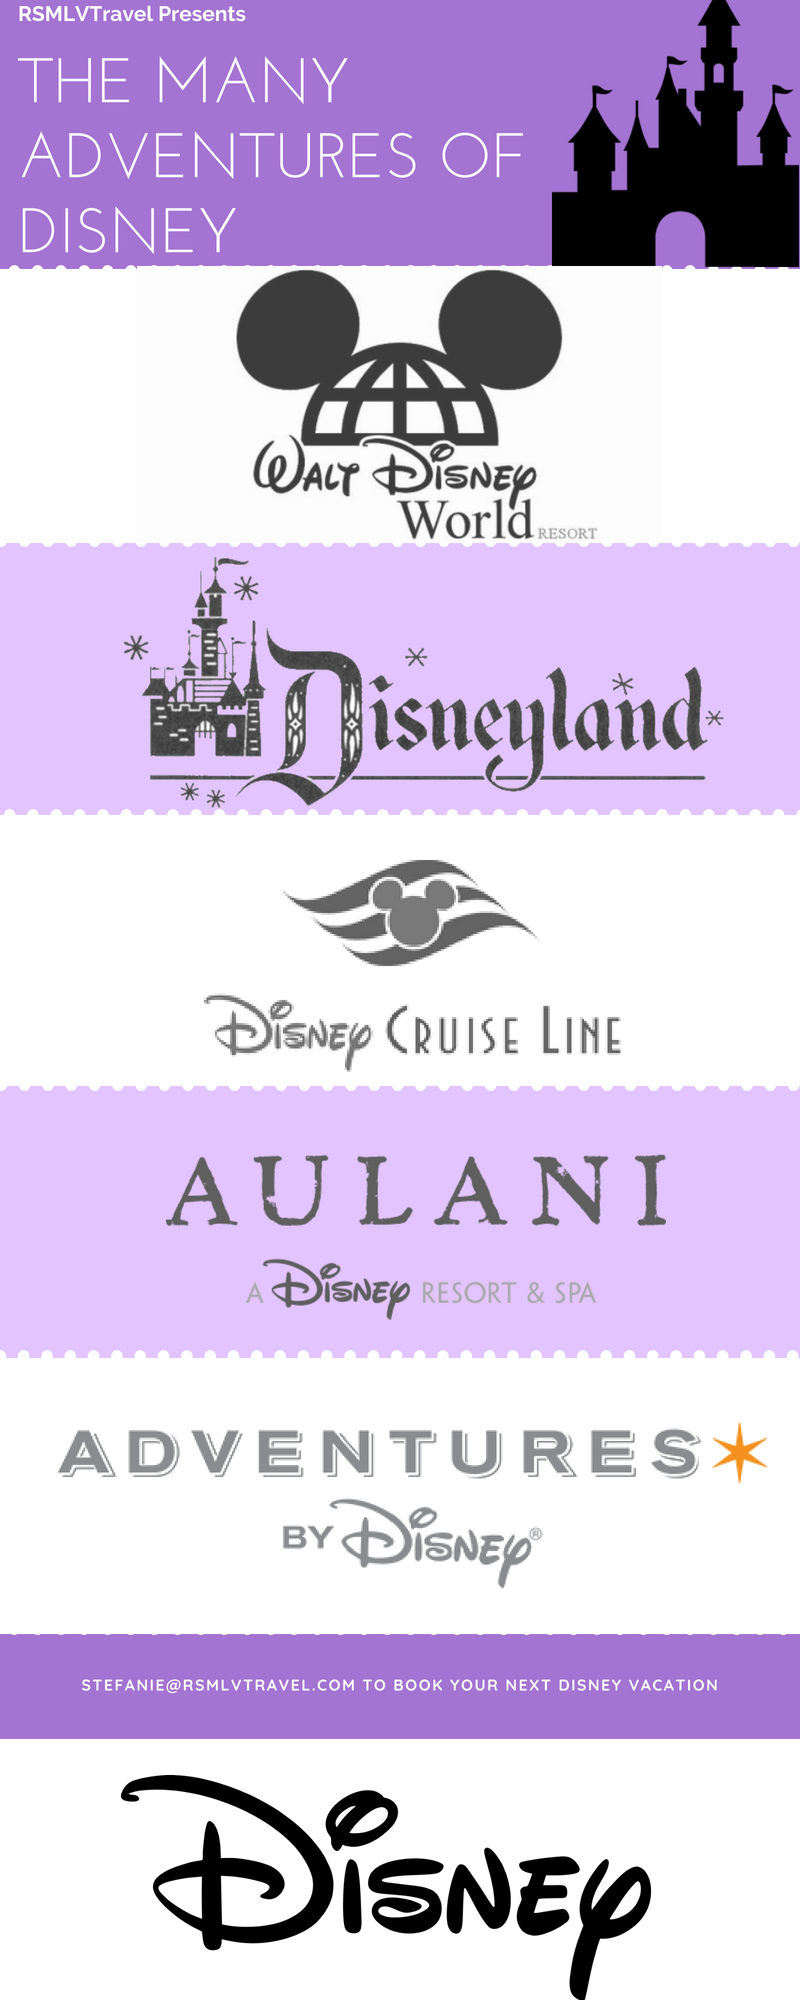 Disney Resorts Theme Parks Cruises Aulani and Adventures by Disney